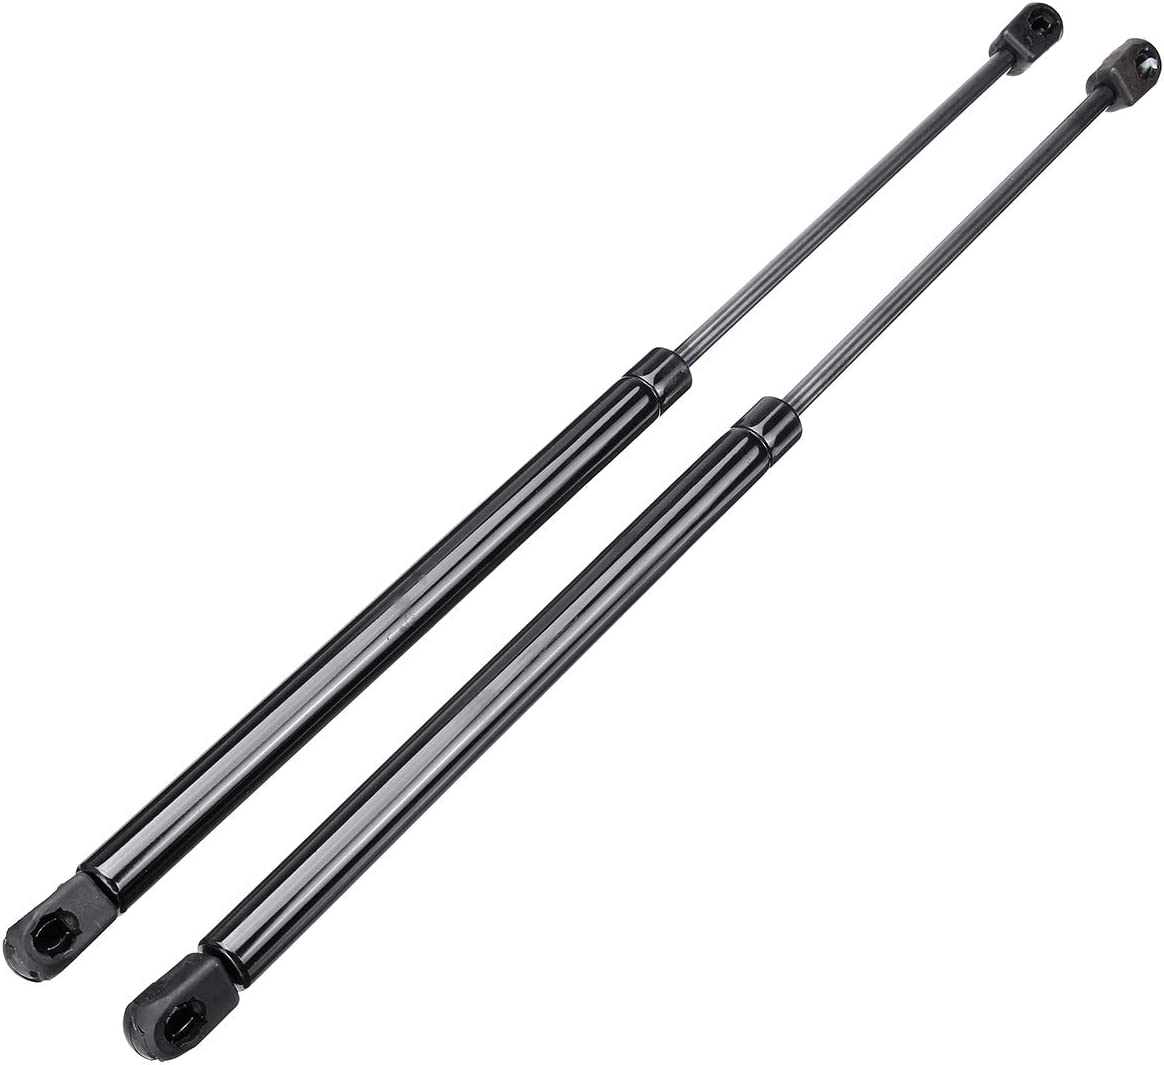 REAR GLASS SUPPORT SHOCKS STRUTS ARMS PROPS FOR LIBERTY 02-07 PAIR